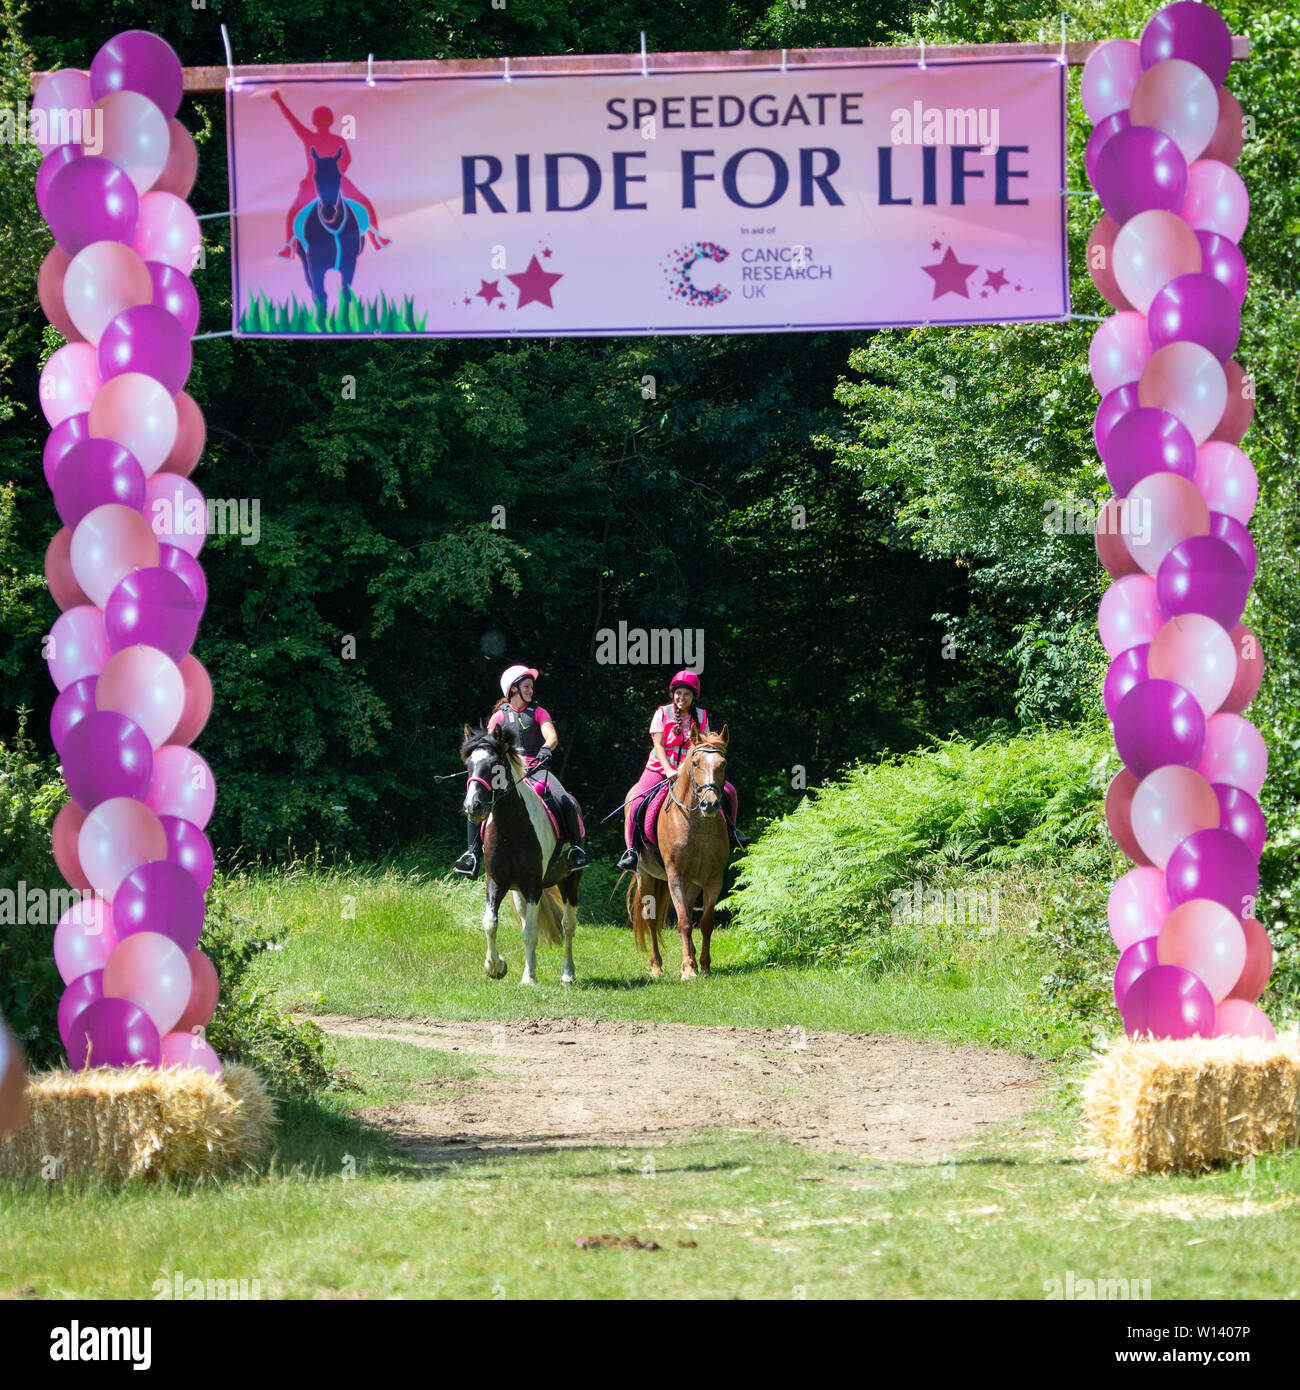 Fawkham Kent. Saturday 29th June 2019, Ride for life at speed gate livery. Riders wearing pink doing a charity ride raising money for cancer research. - Stock Image